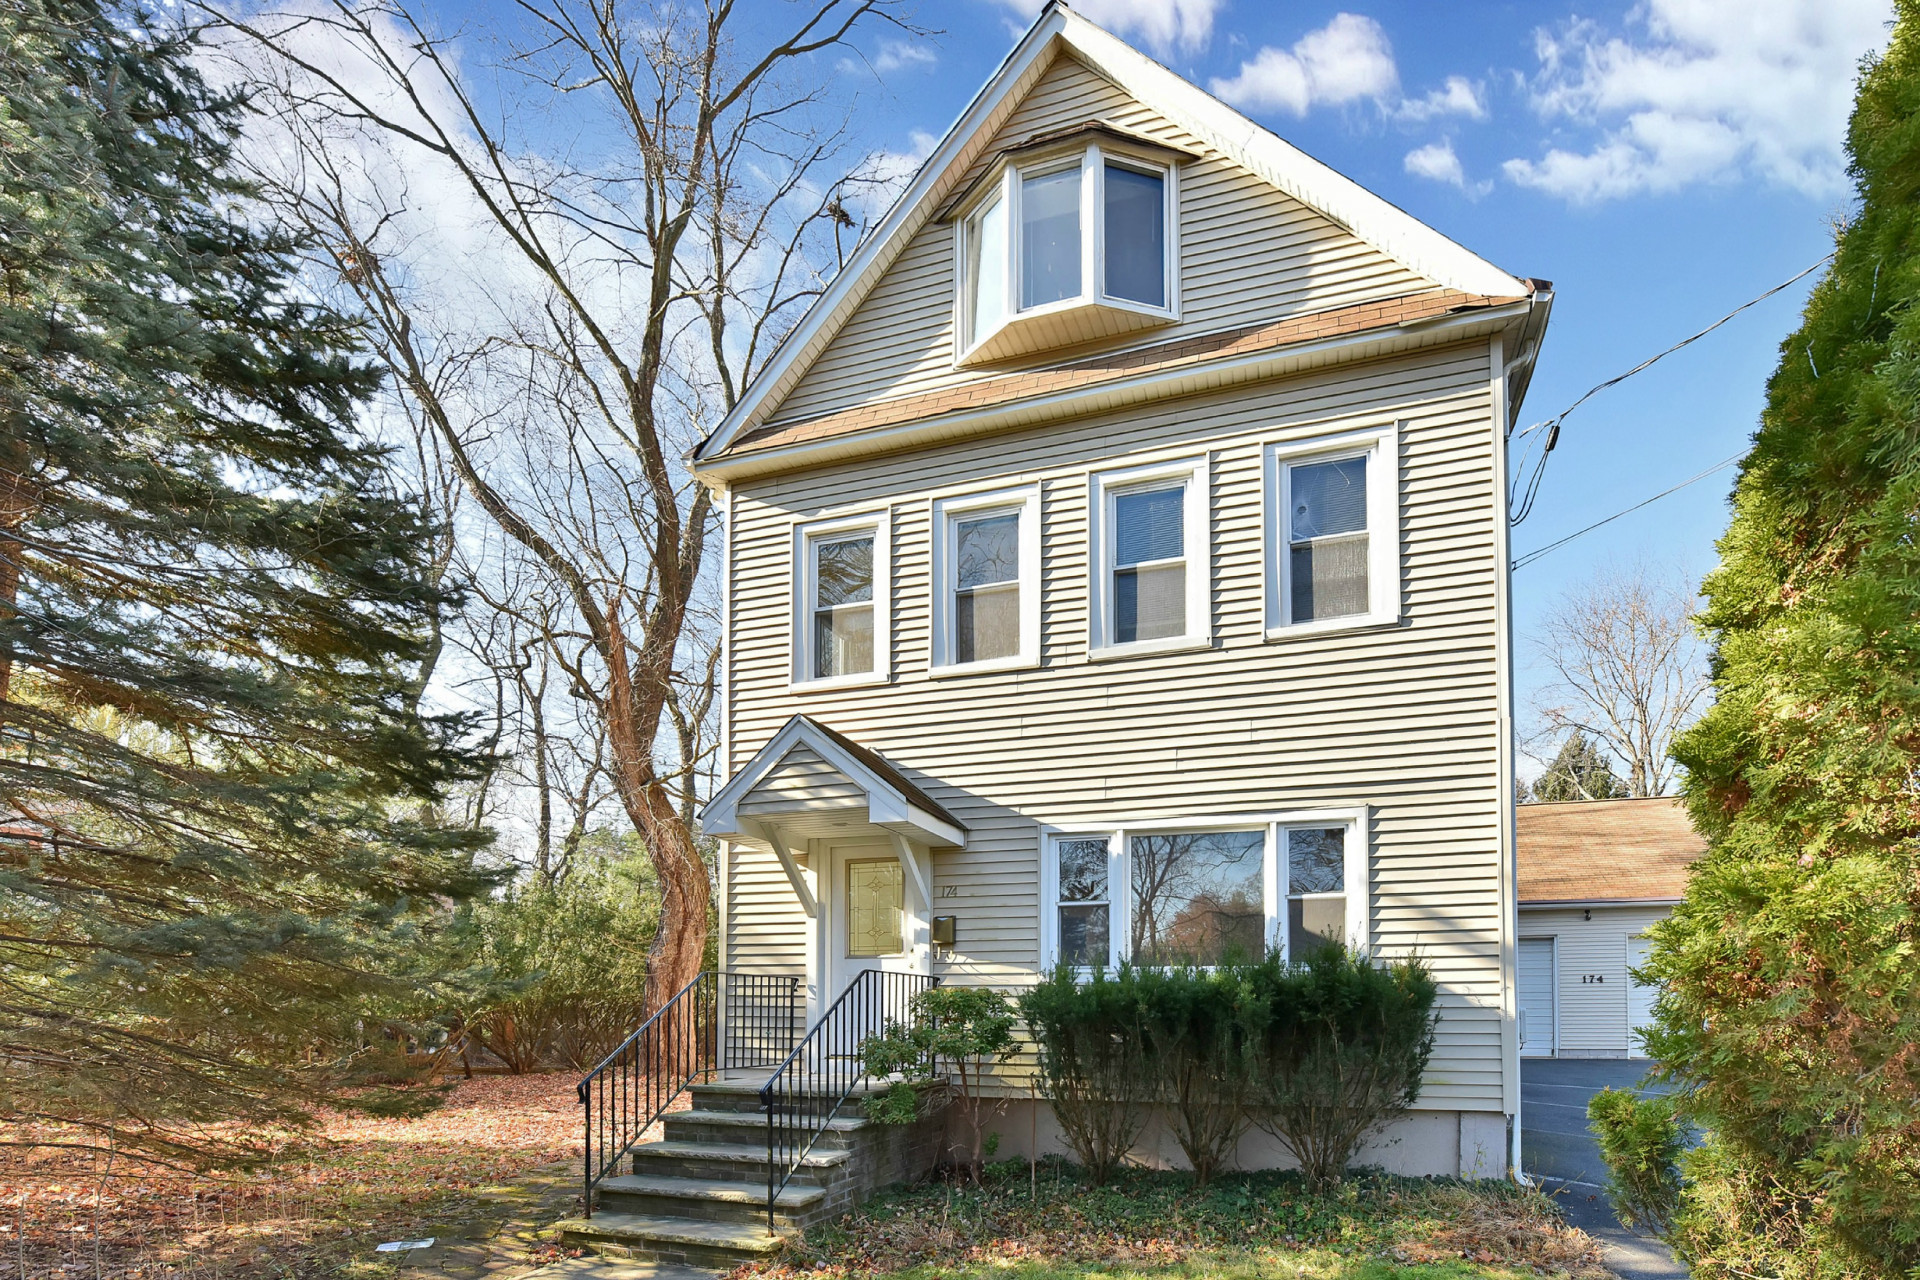 Single Family Home for Sale at Great Opportunity 174 Harrington Ave Closter, New Jersey 07624 United States